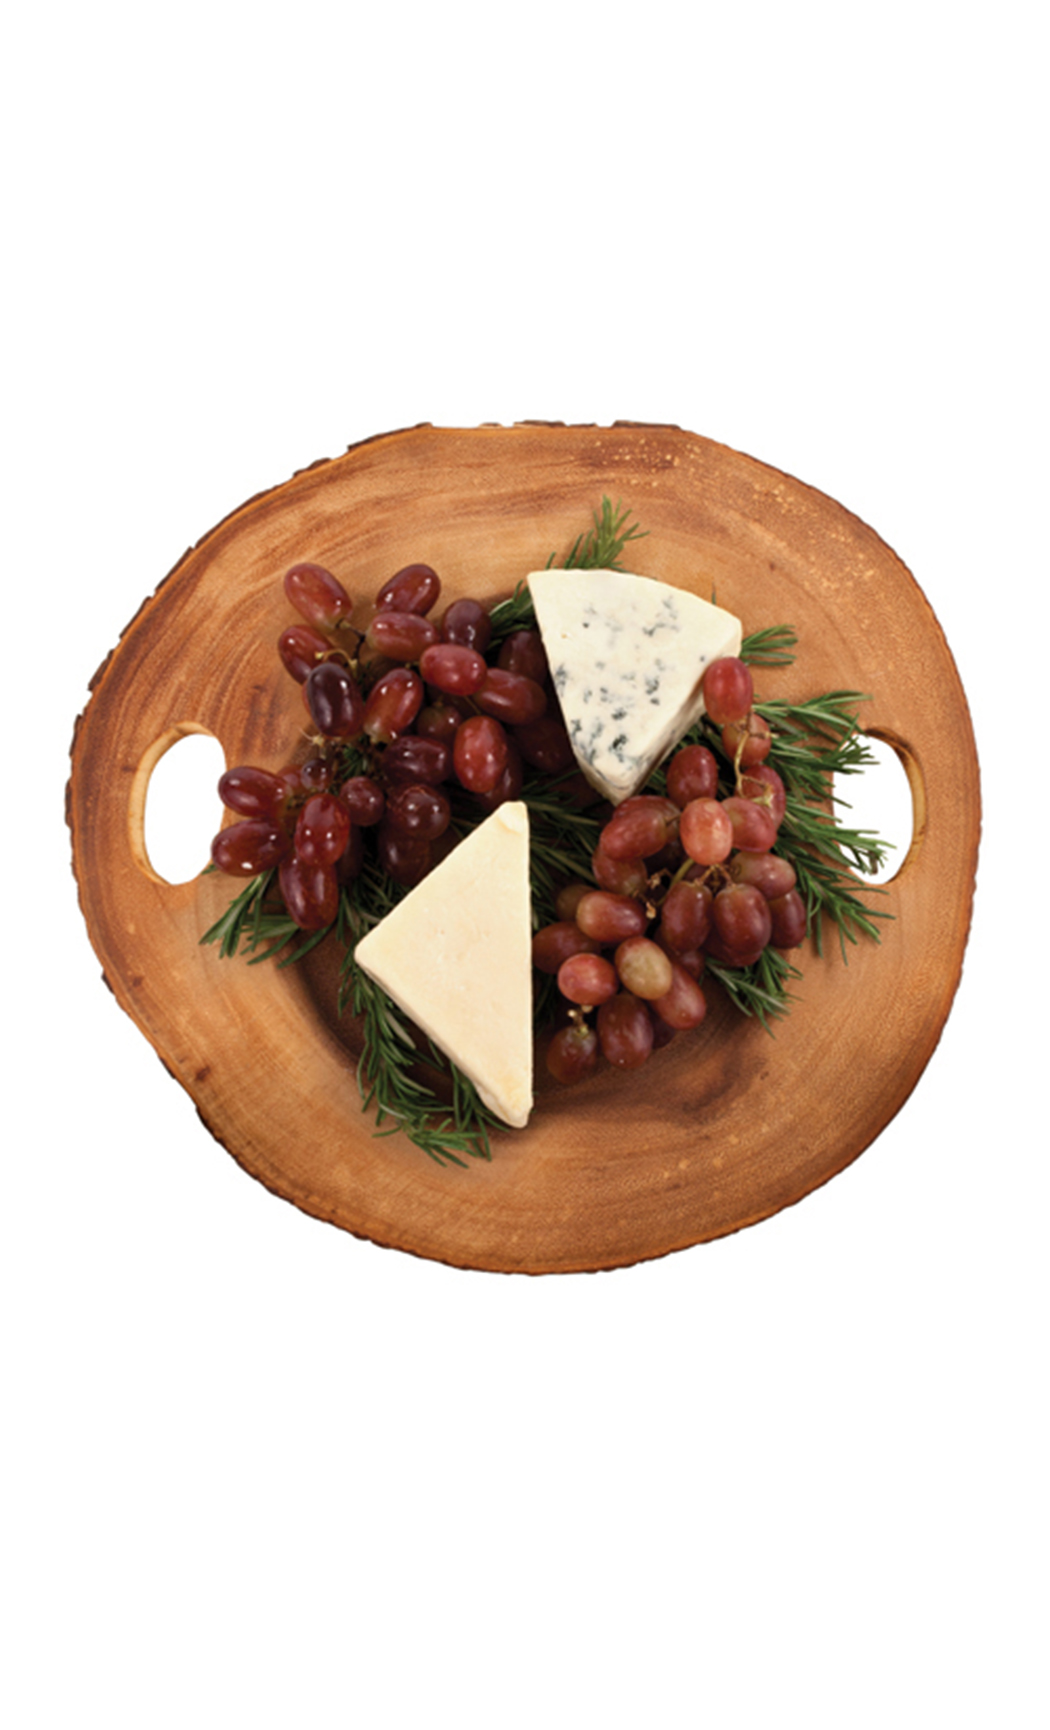 Rustic Famhouse: Wood Slice Cheeseboard